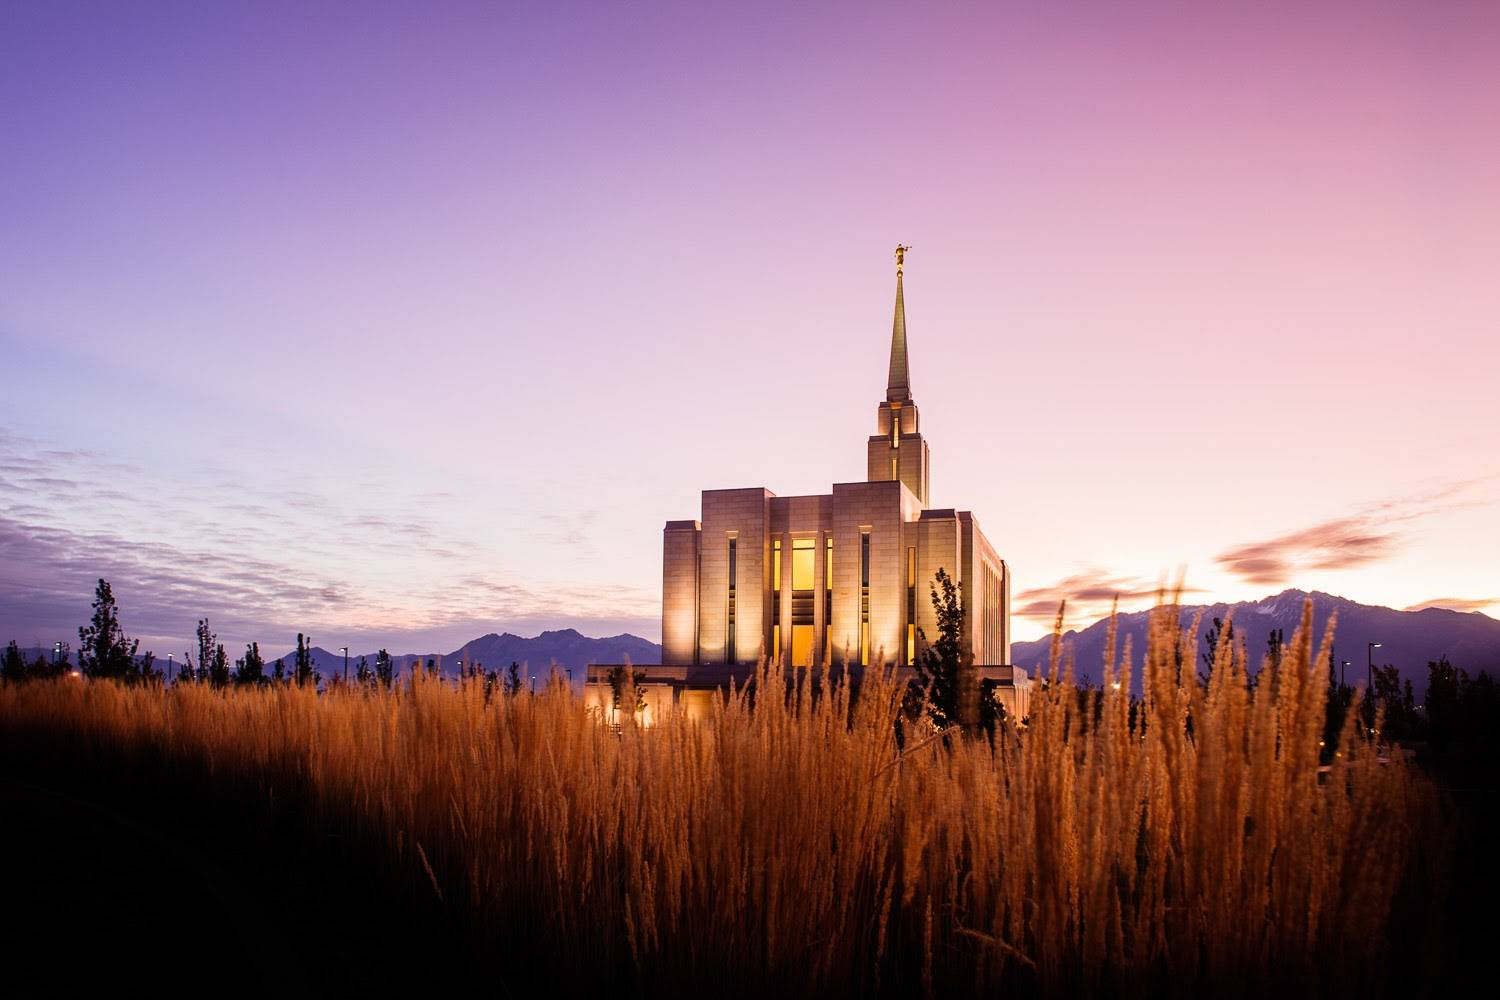 LDS art photo of the Oquirrh Mountain Temple standing behind a field.